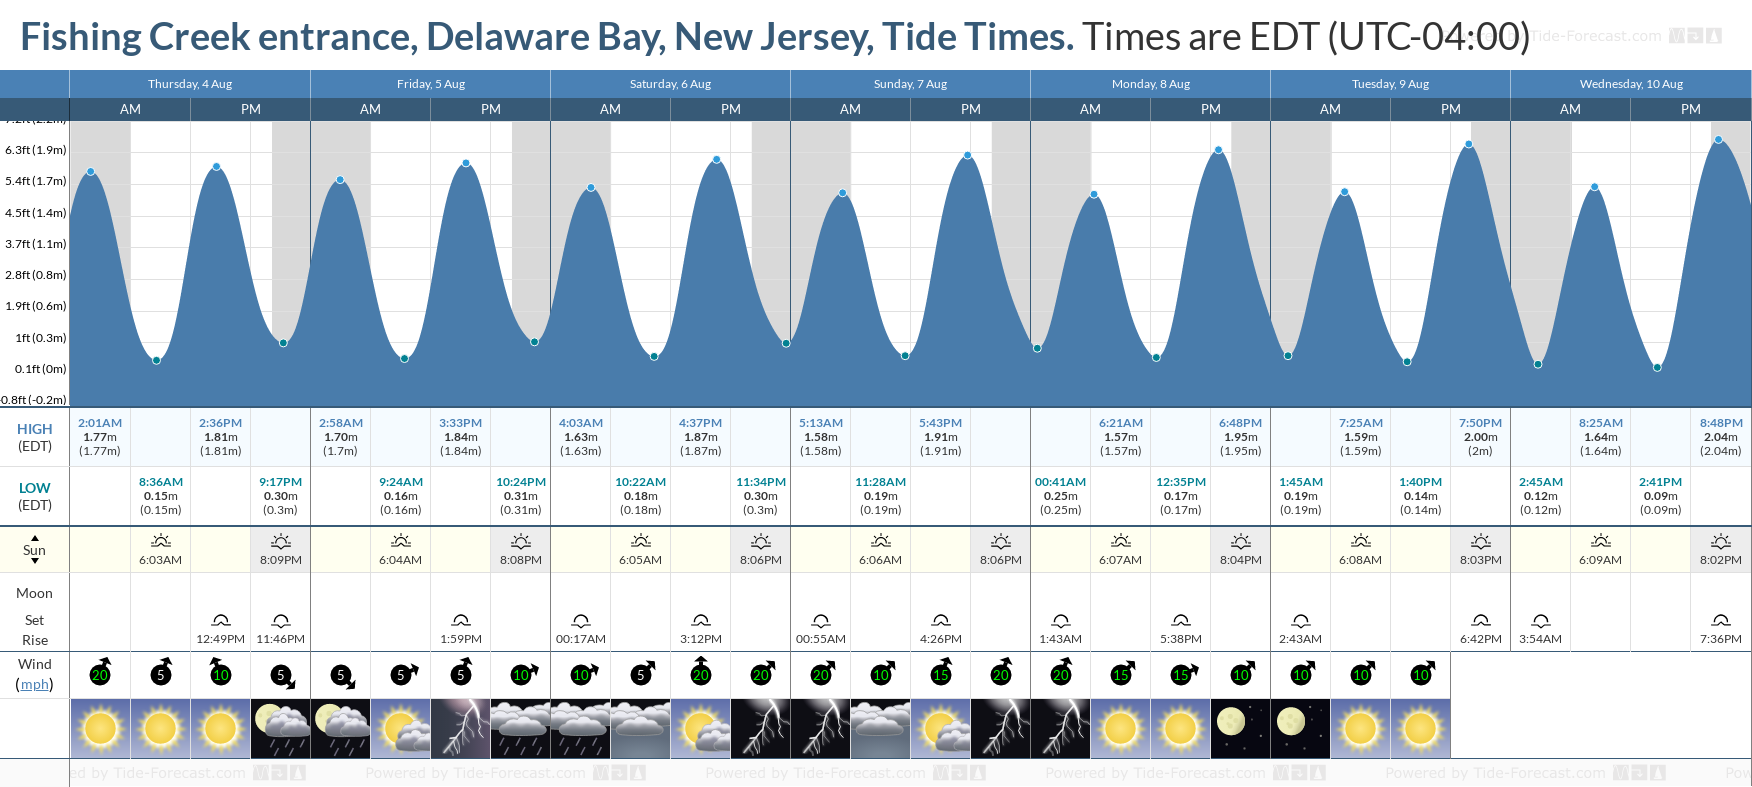 Fishing Creek entrance, Delaware Bay, New Jersey Tide Chart including high and low tide tide times for the next 7 days